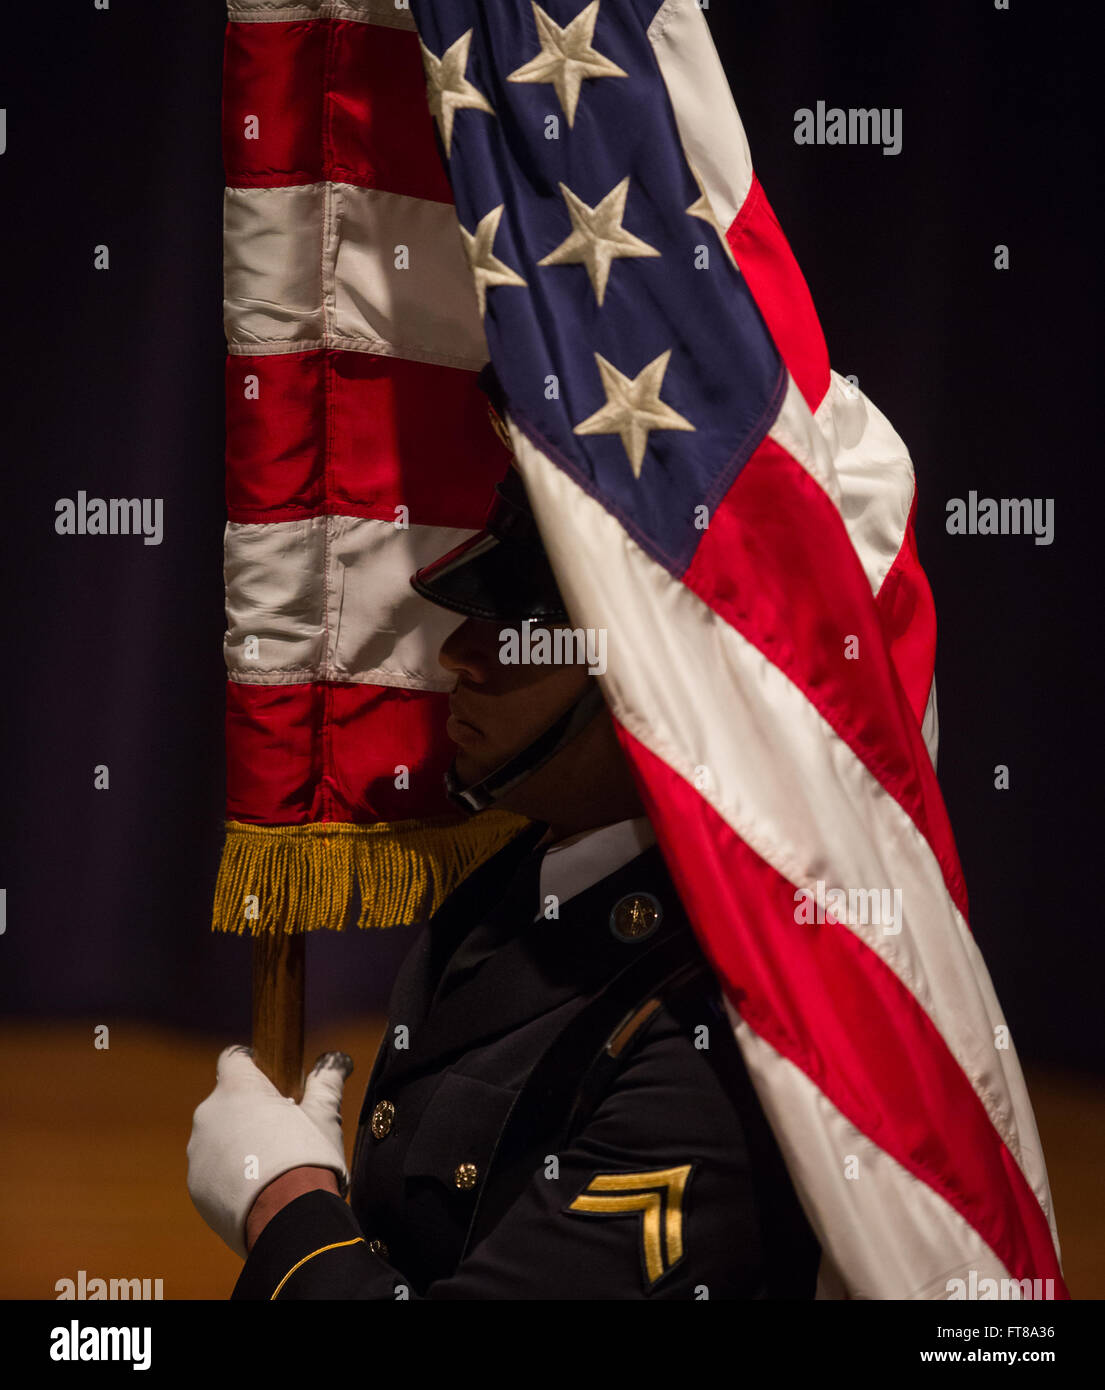 A U.S. Army Honor Guard member carries the Flag at the opening of the 2015 National Native American Heritage Month - Stock Image